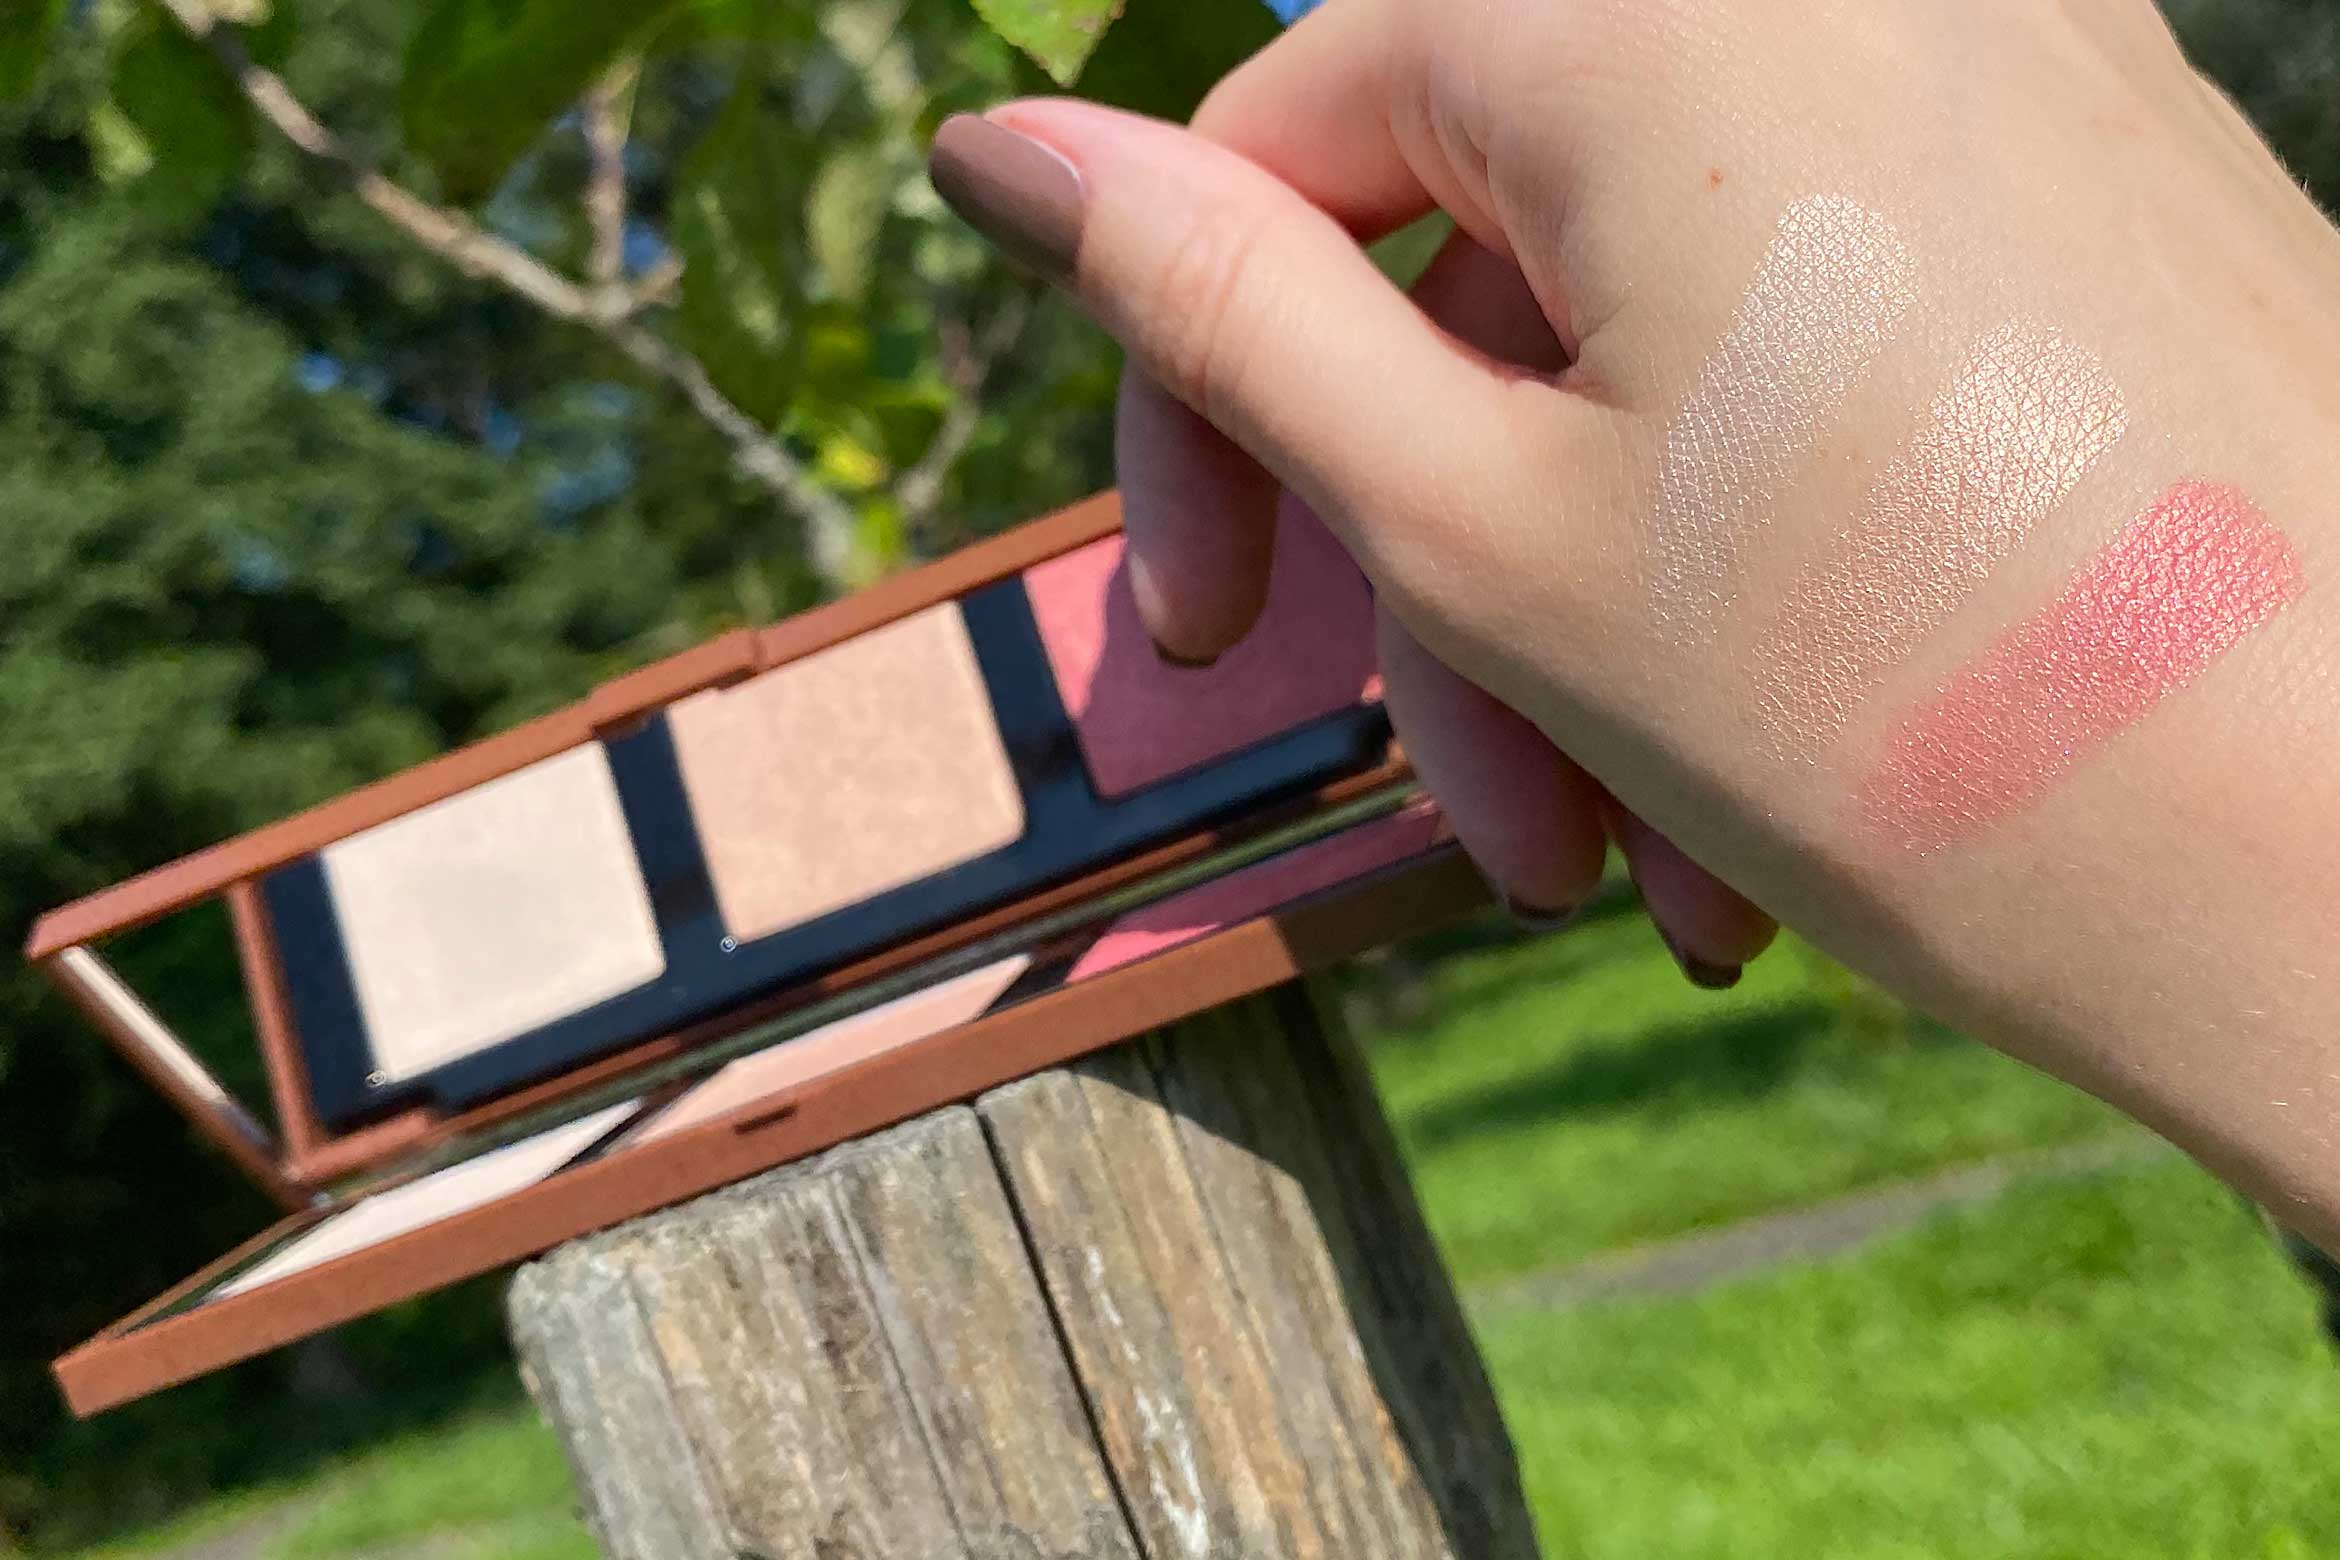 pupa zero calorie chocolate highlighting face palette swatch 001 cherry chocolate no panic there's chocolate